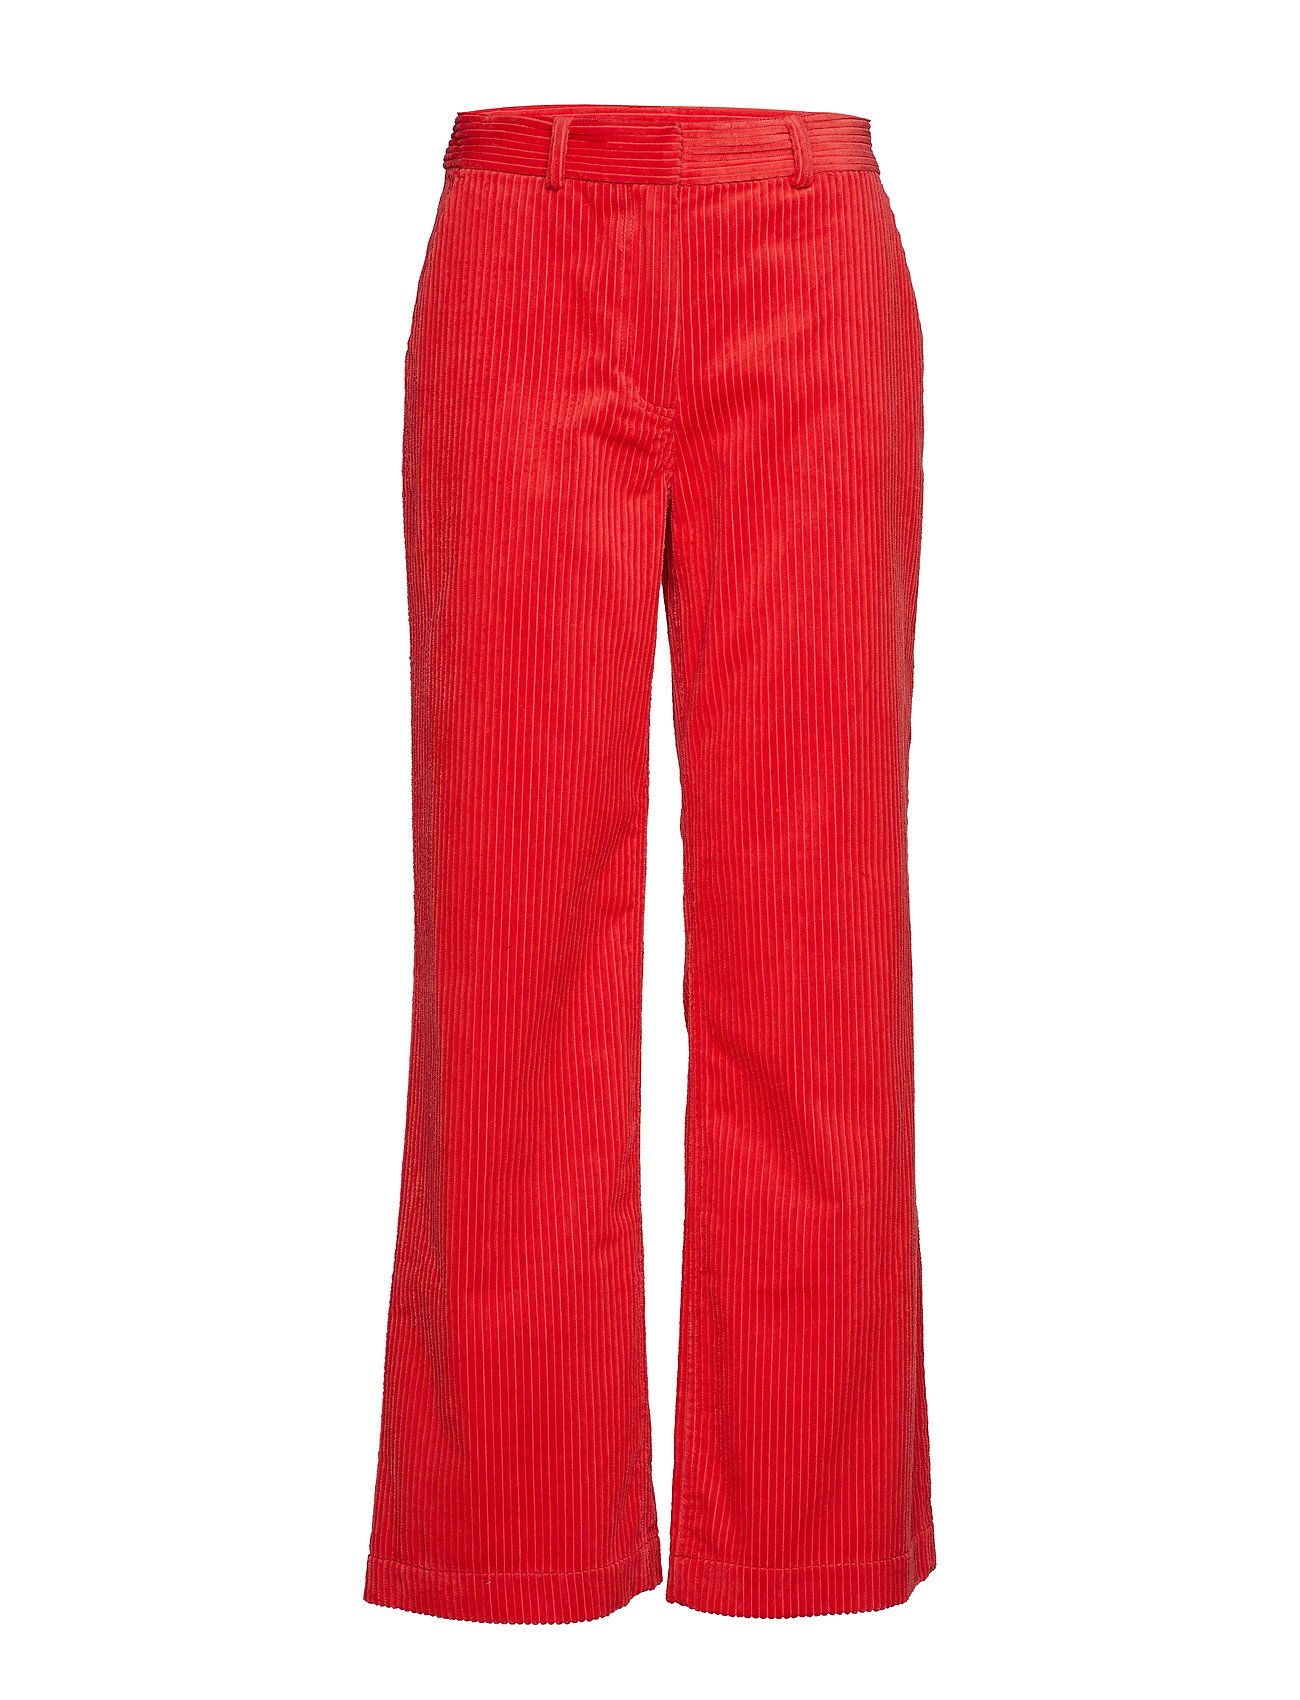 DESIGNERS, REMIX Tessa Pants - LIPSTICK RED